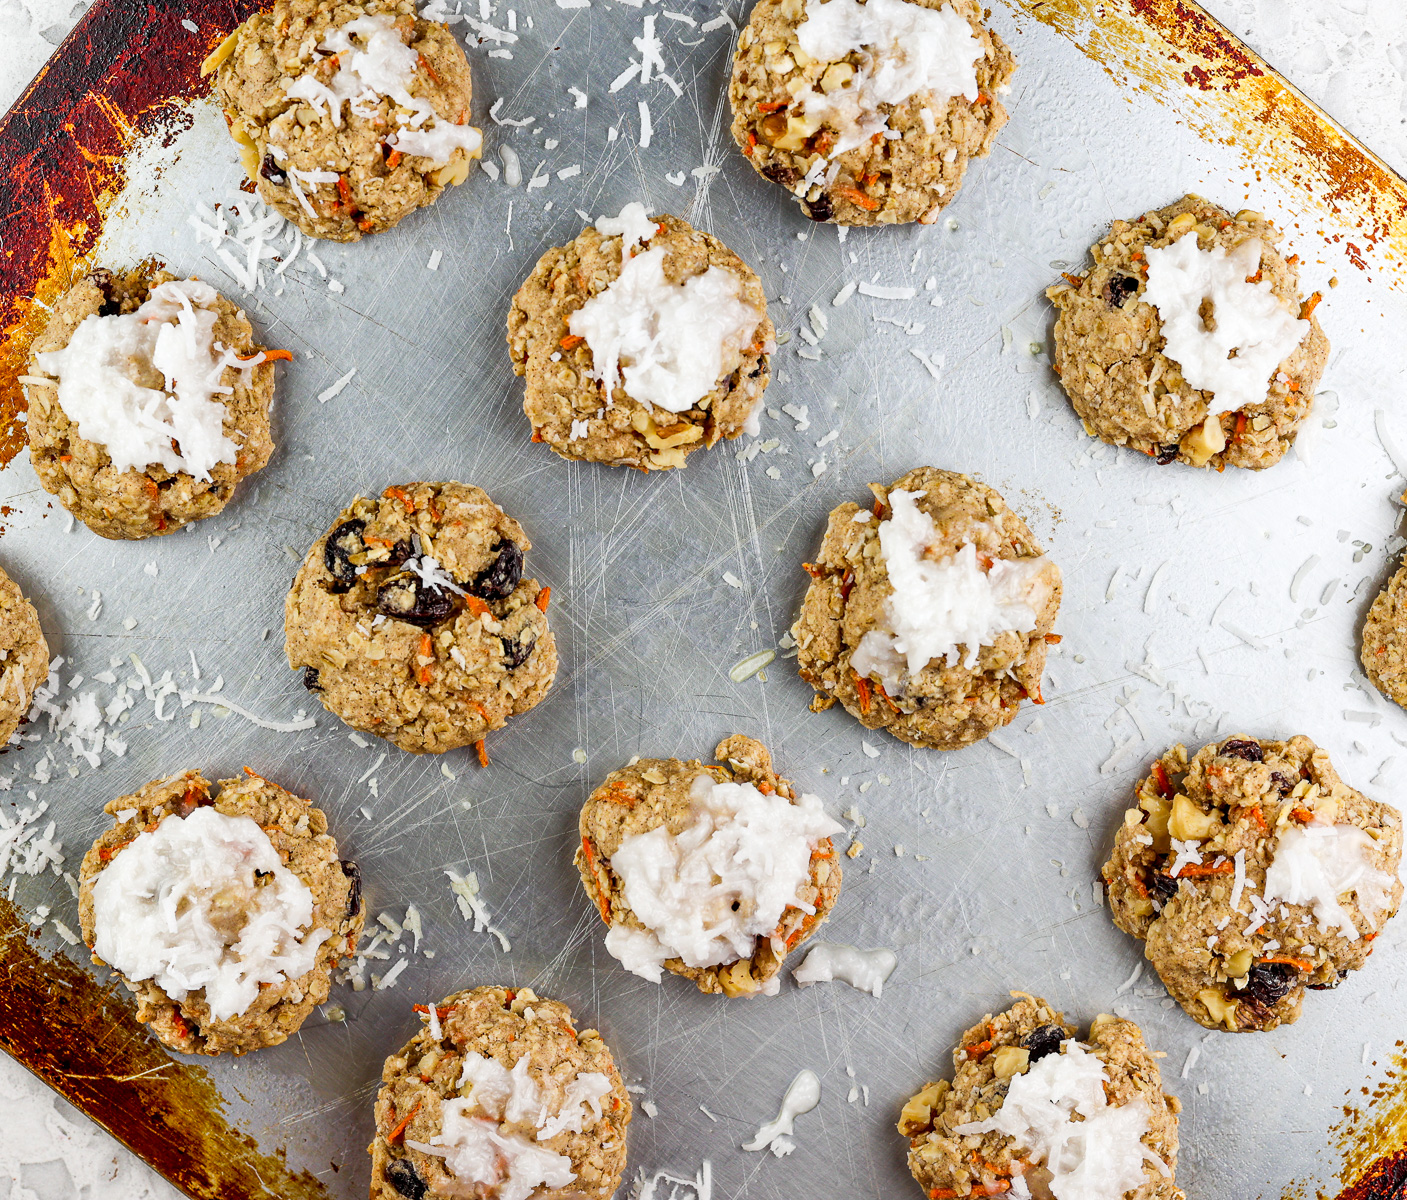 Cookies lined on a baking sheet.